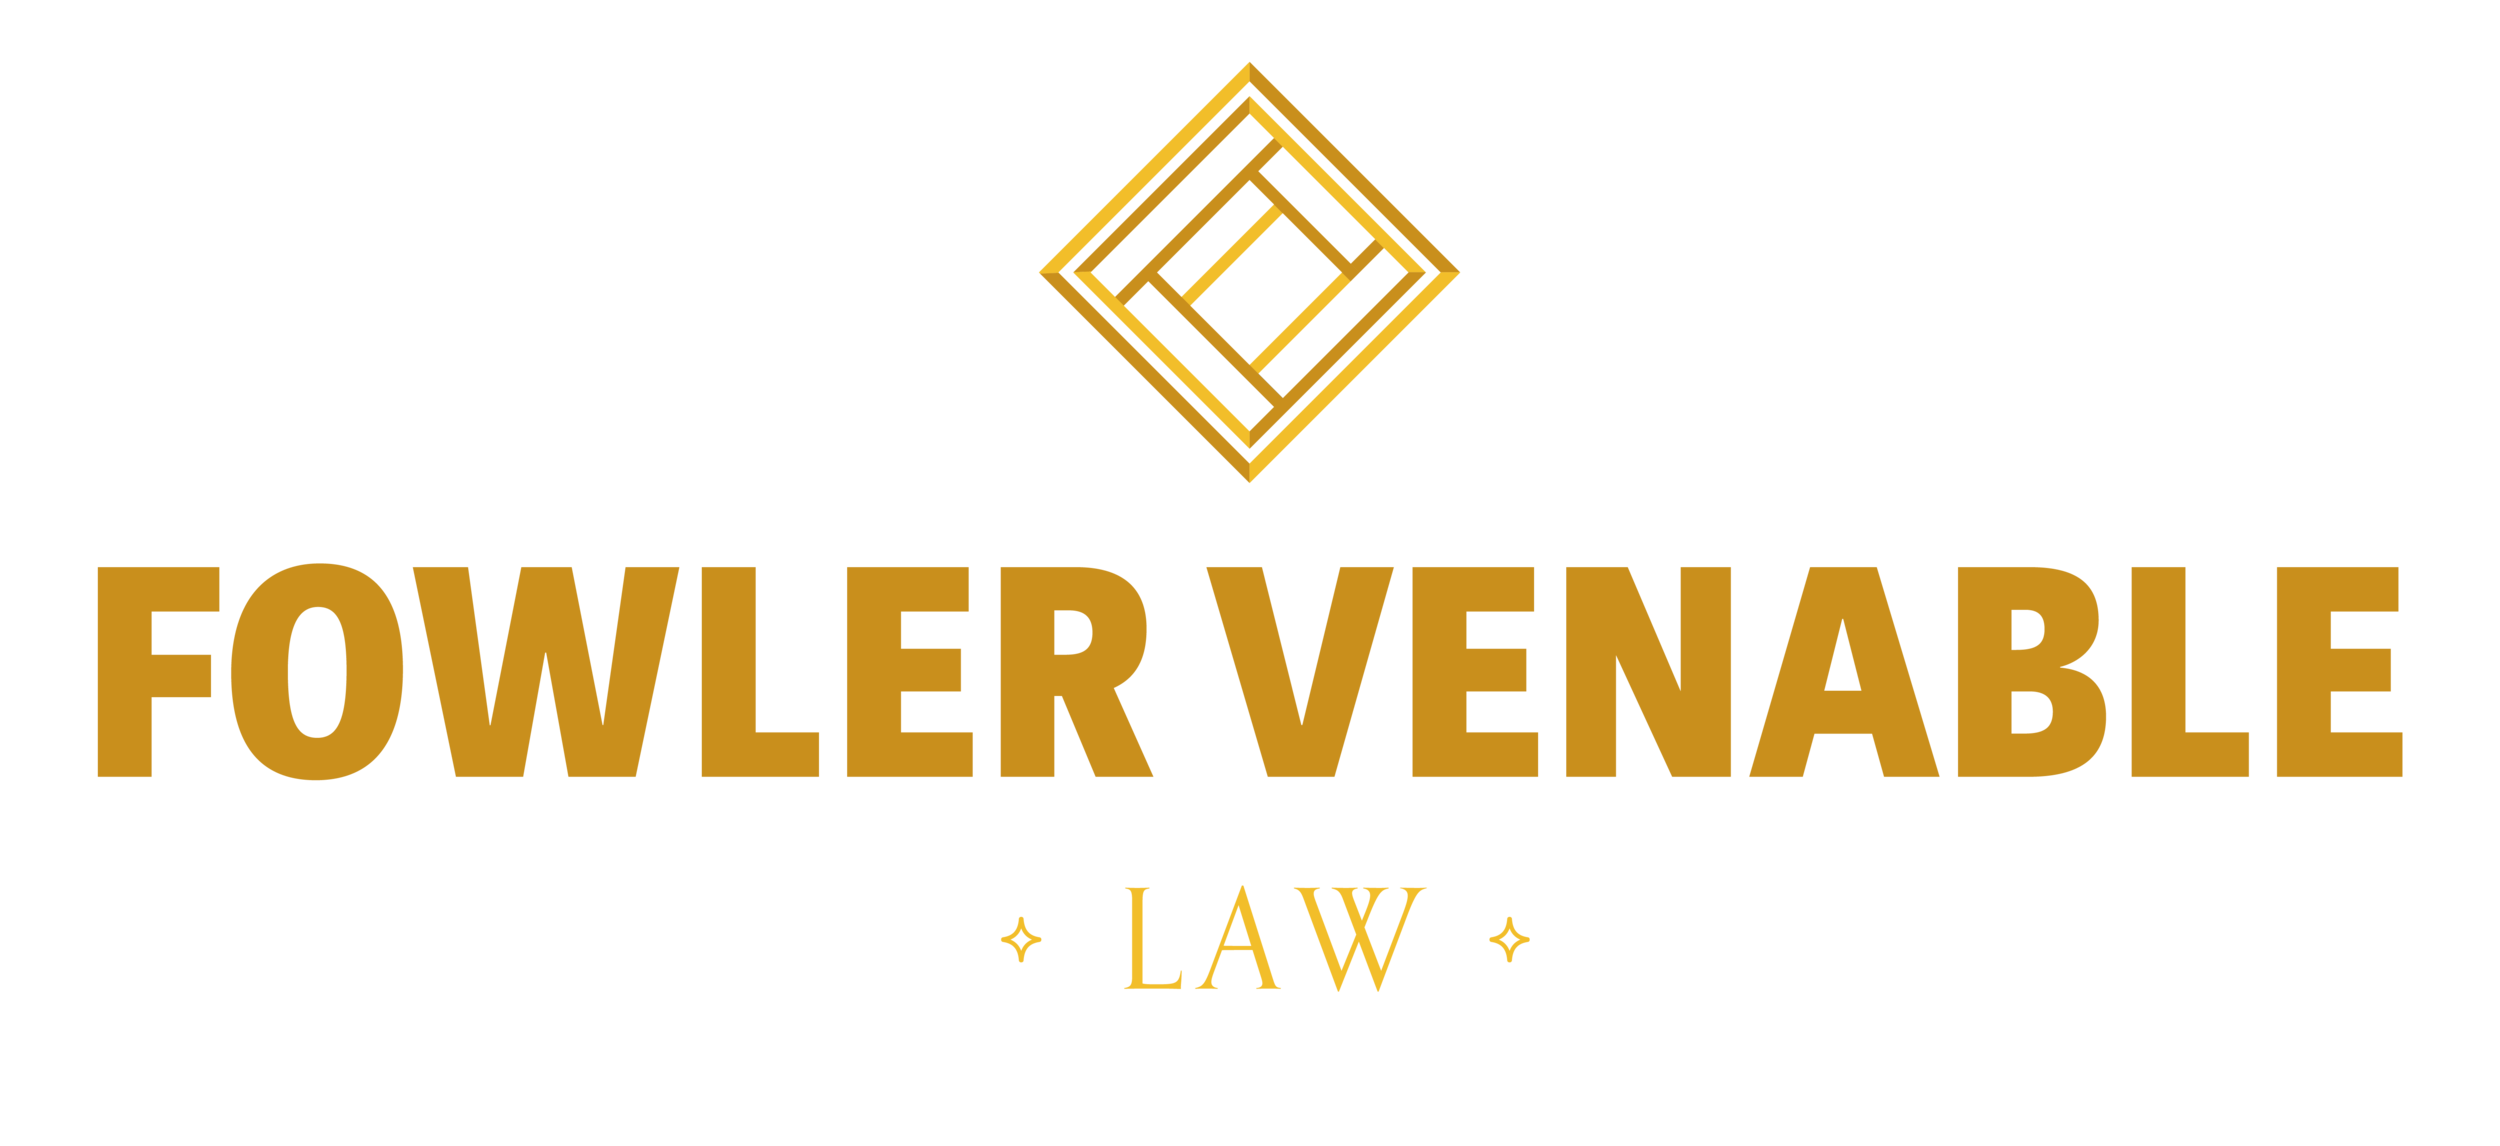 Fowler Venable Law Logo Suite-04.png